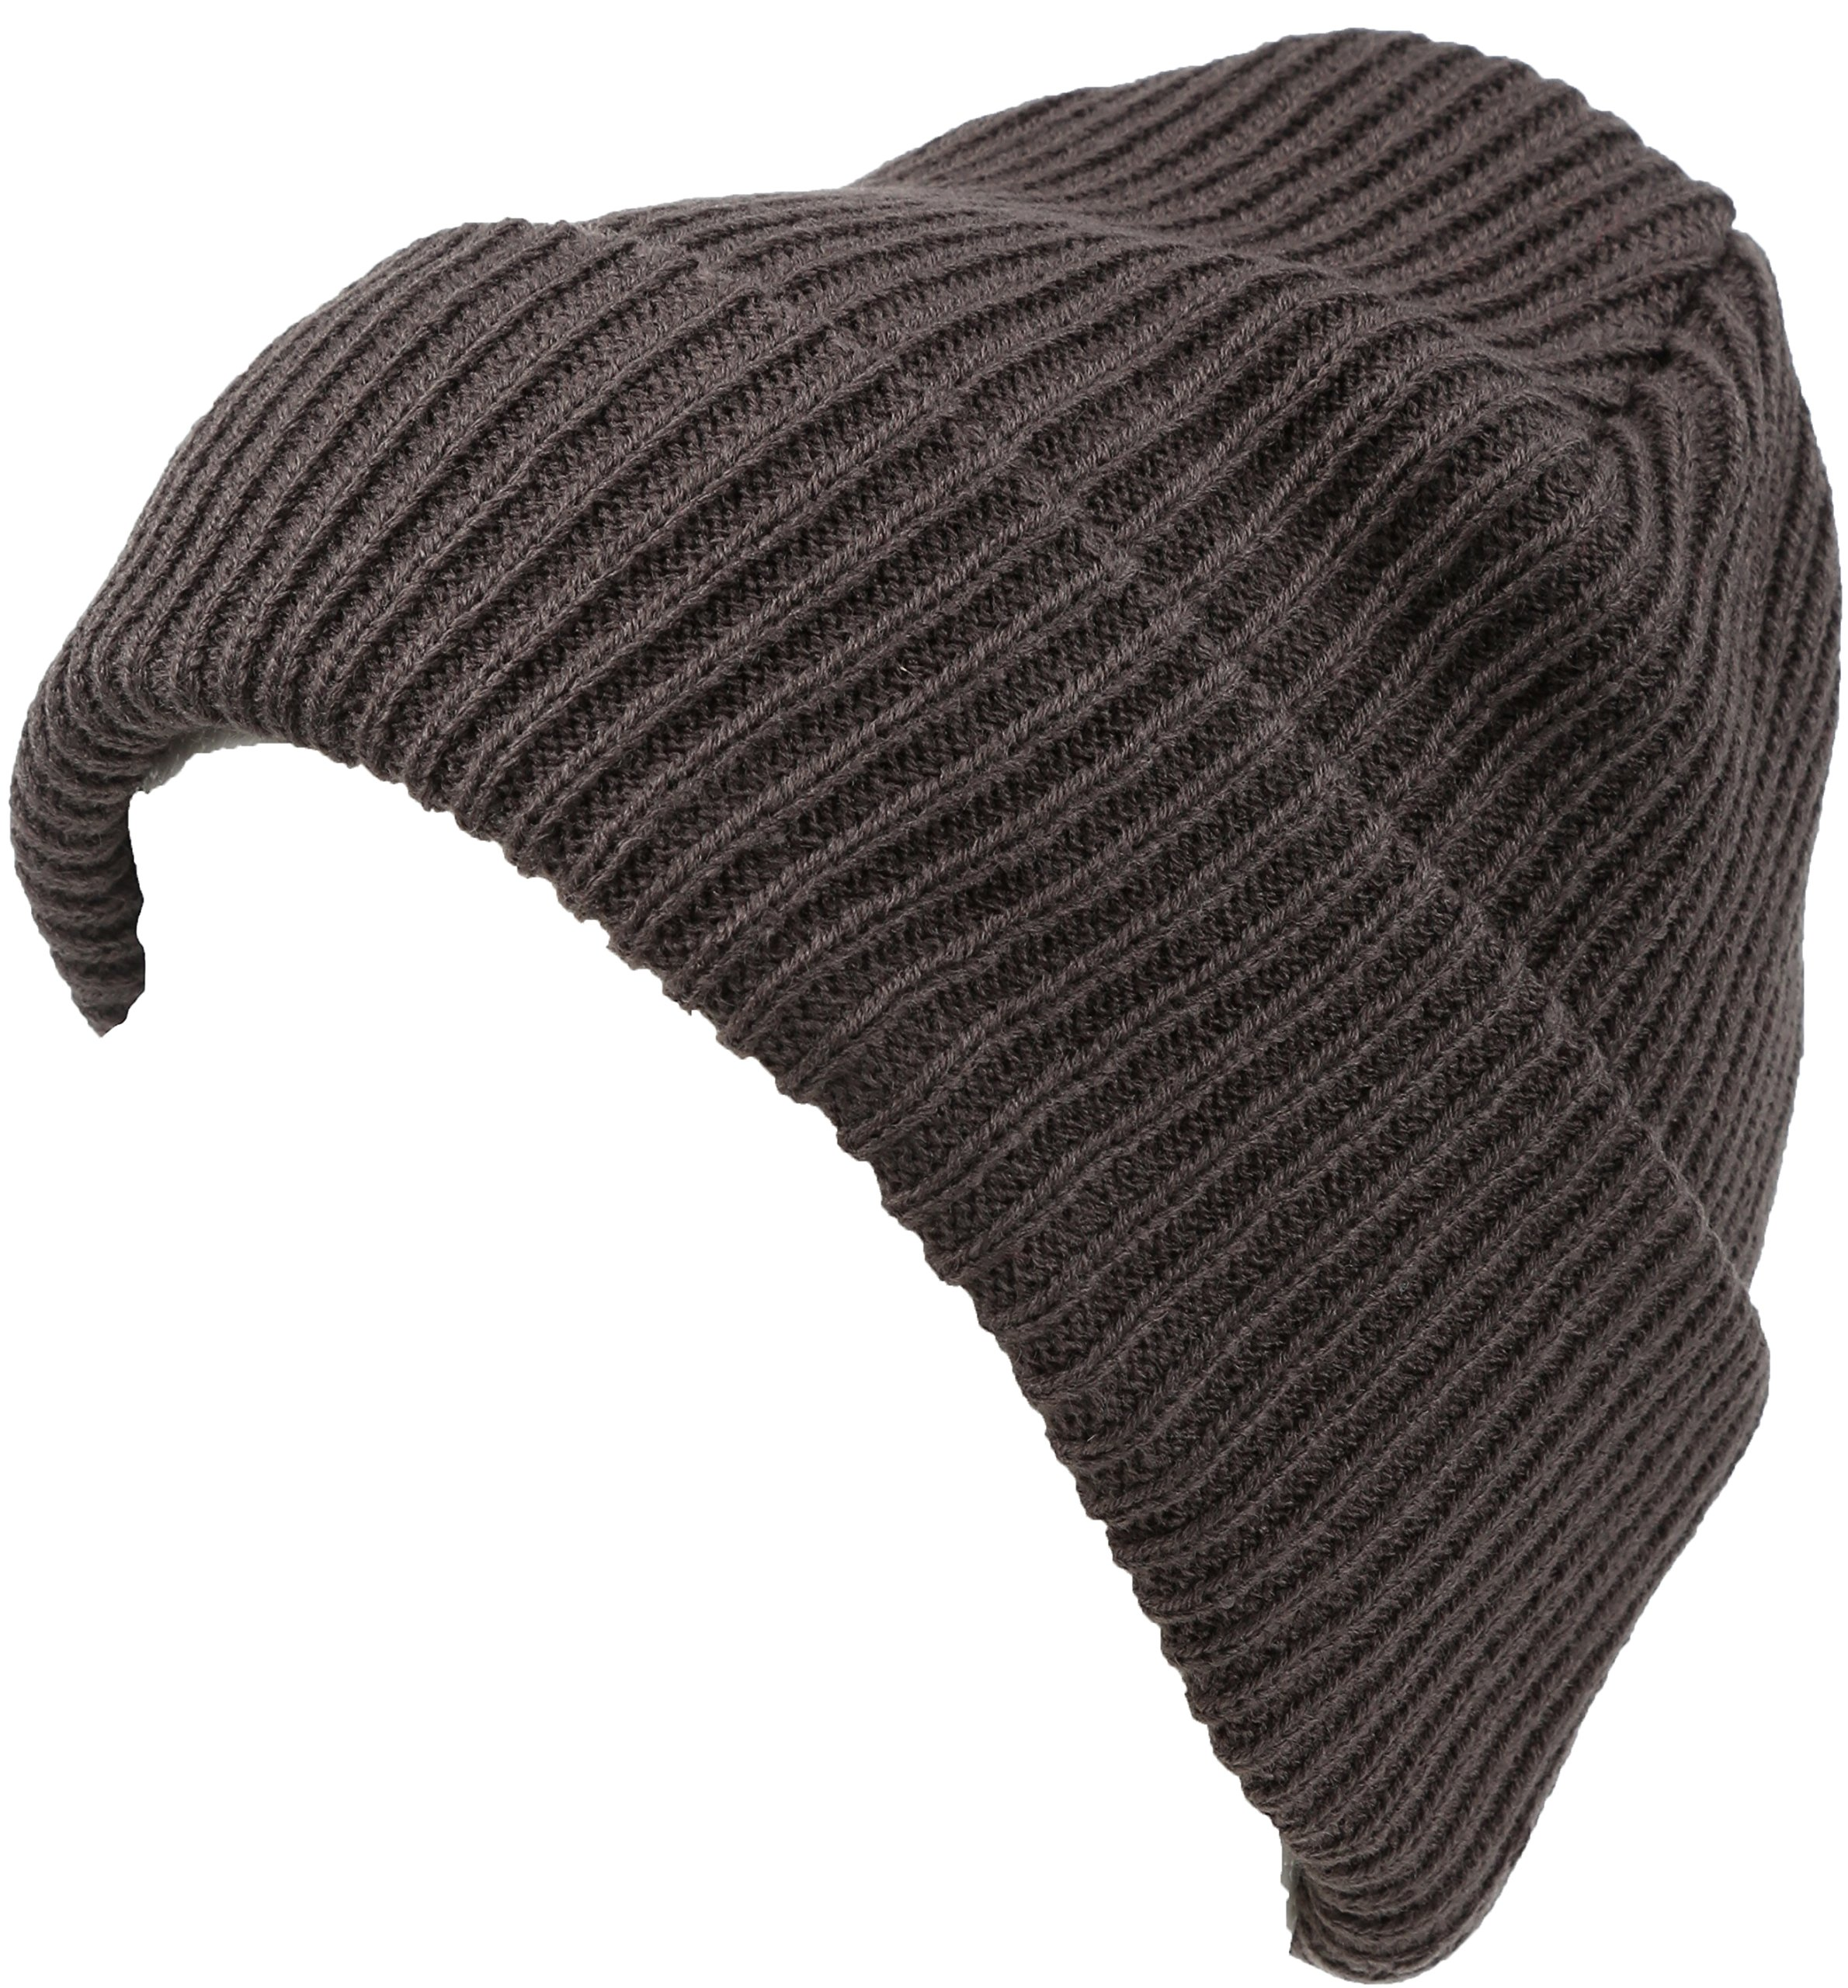 Sakkas 16152 - Mig Solid Ribbed Knit Fold Over Unisex Long Tall Fit Fishermans Beanie Hat - Grey - OS